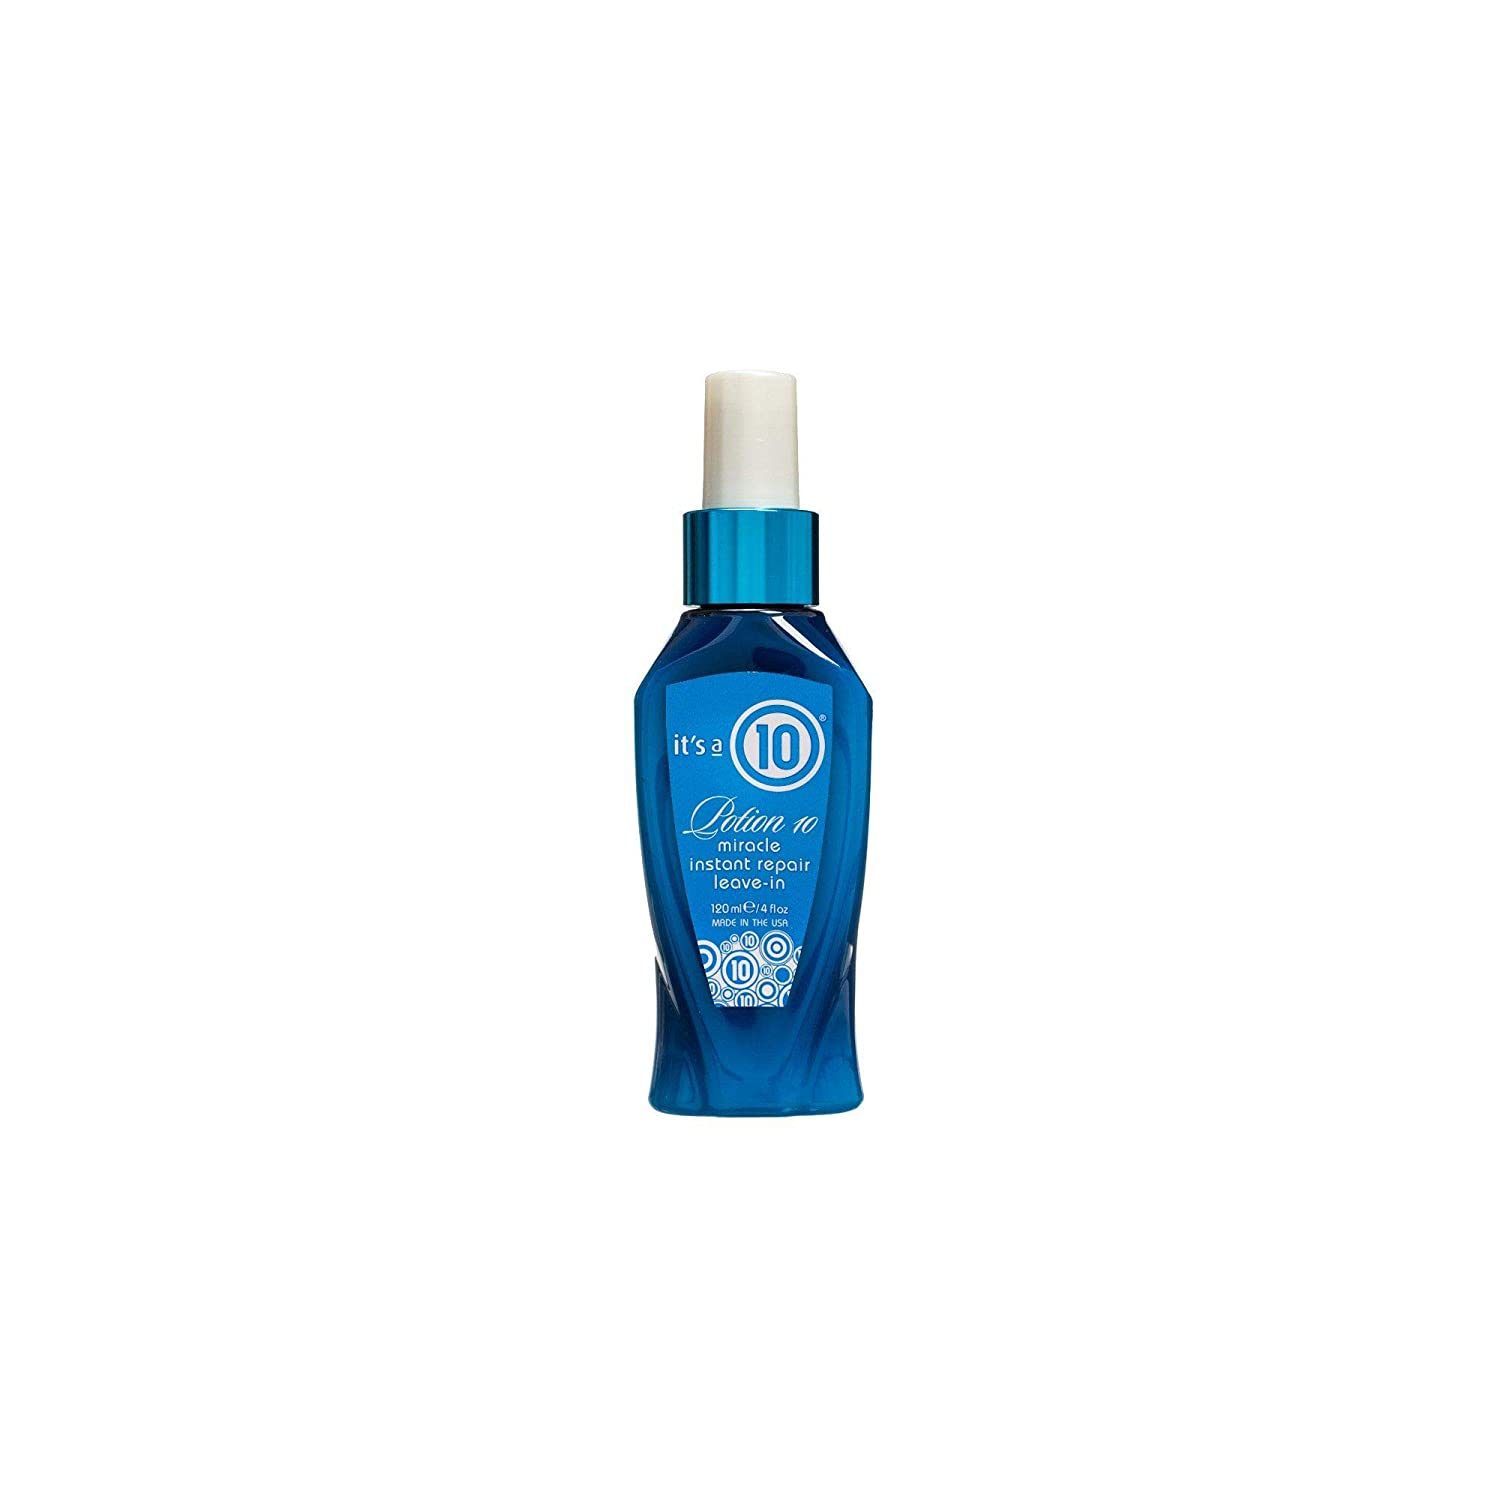 It's a 10 Haircare Potion Miracle 10 Instant Repair Leave-In, 2 fl. oz.